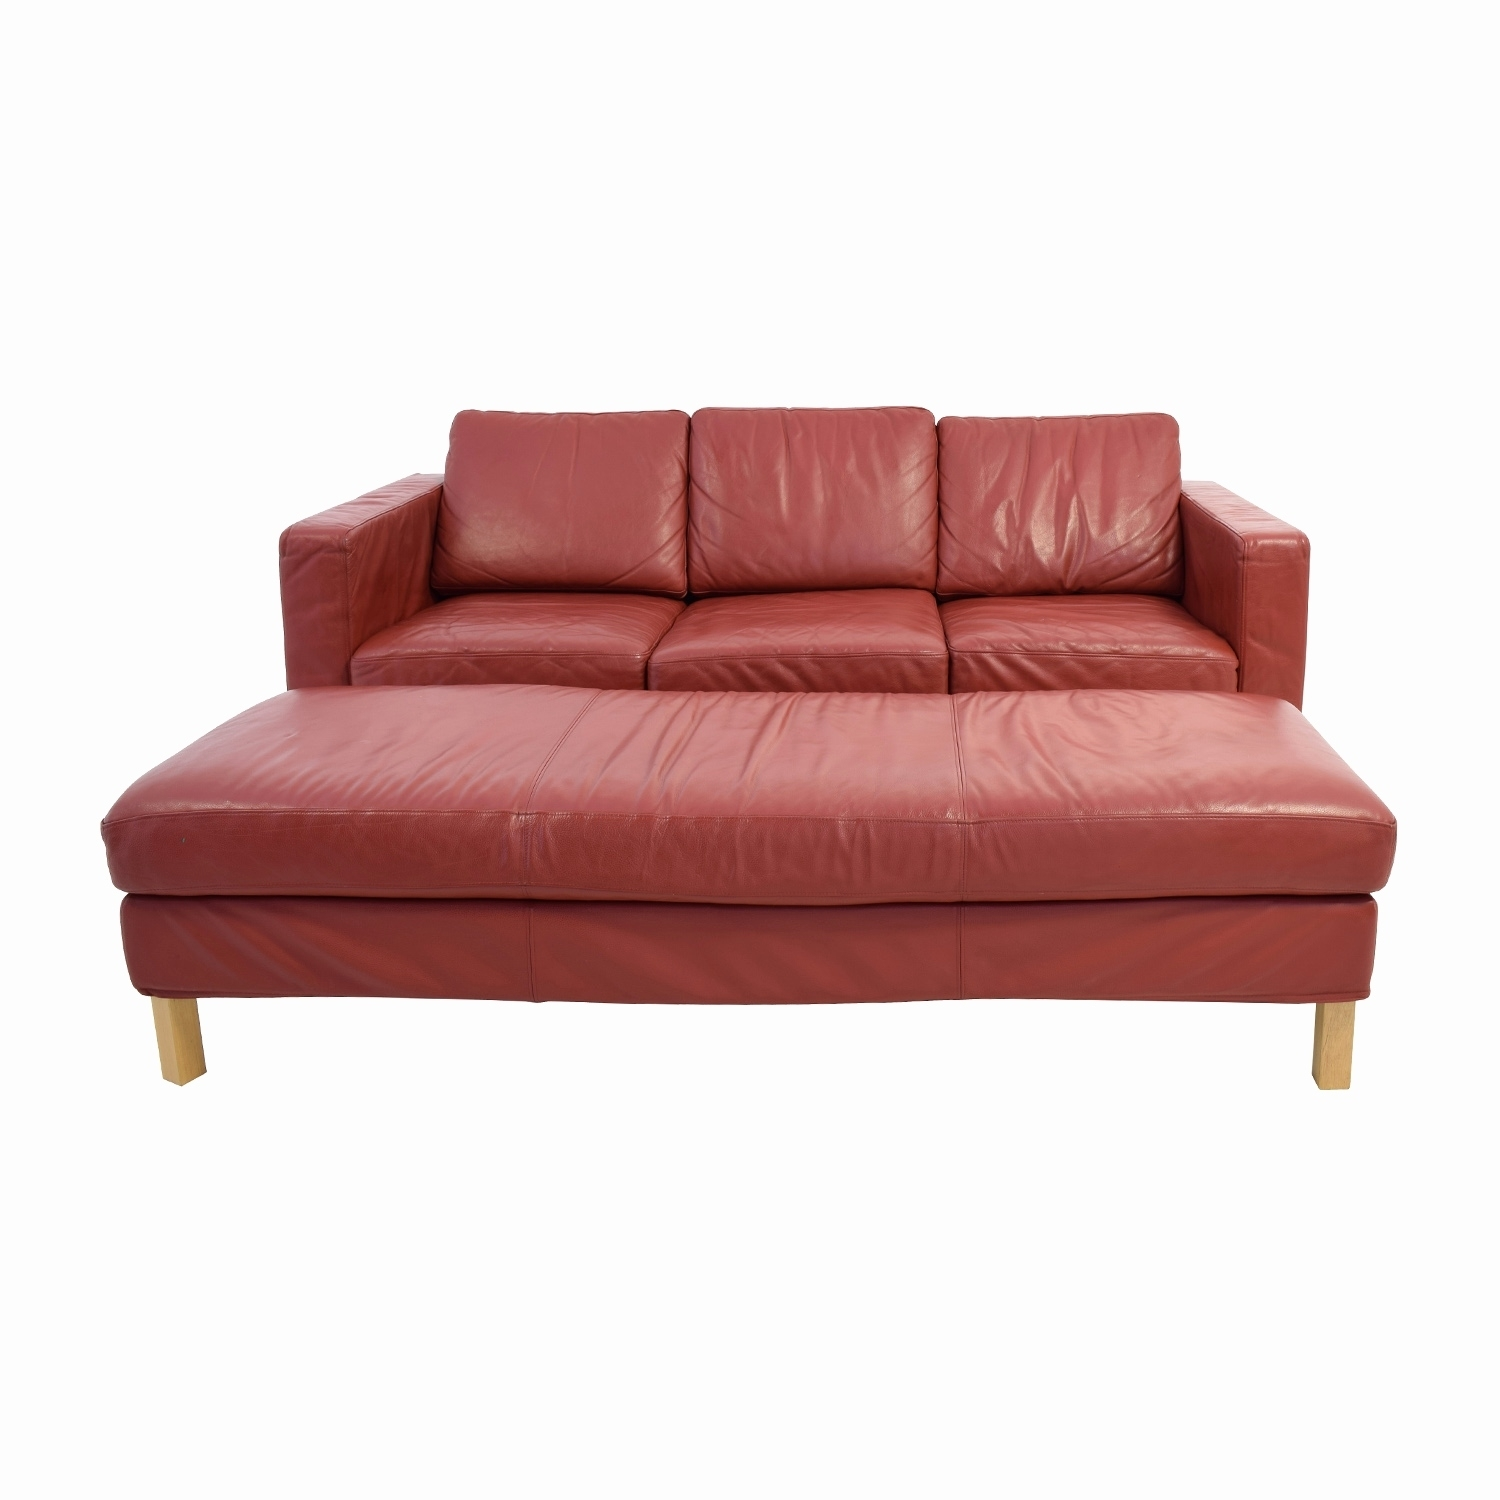 Luxury Red Leather Sofa 2018 – Couches Ideas with regard to Red Leather Couches (Image 8 of 15)